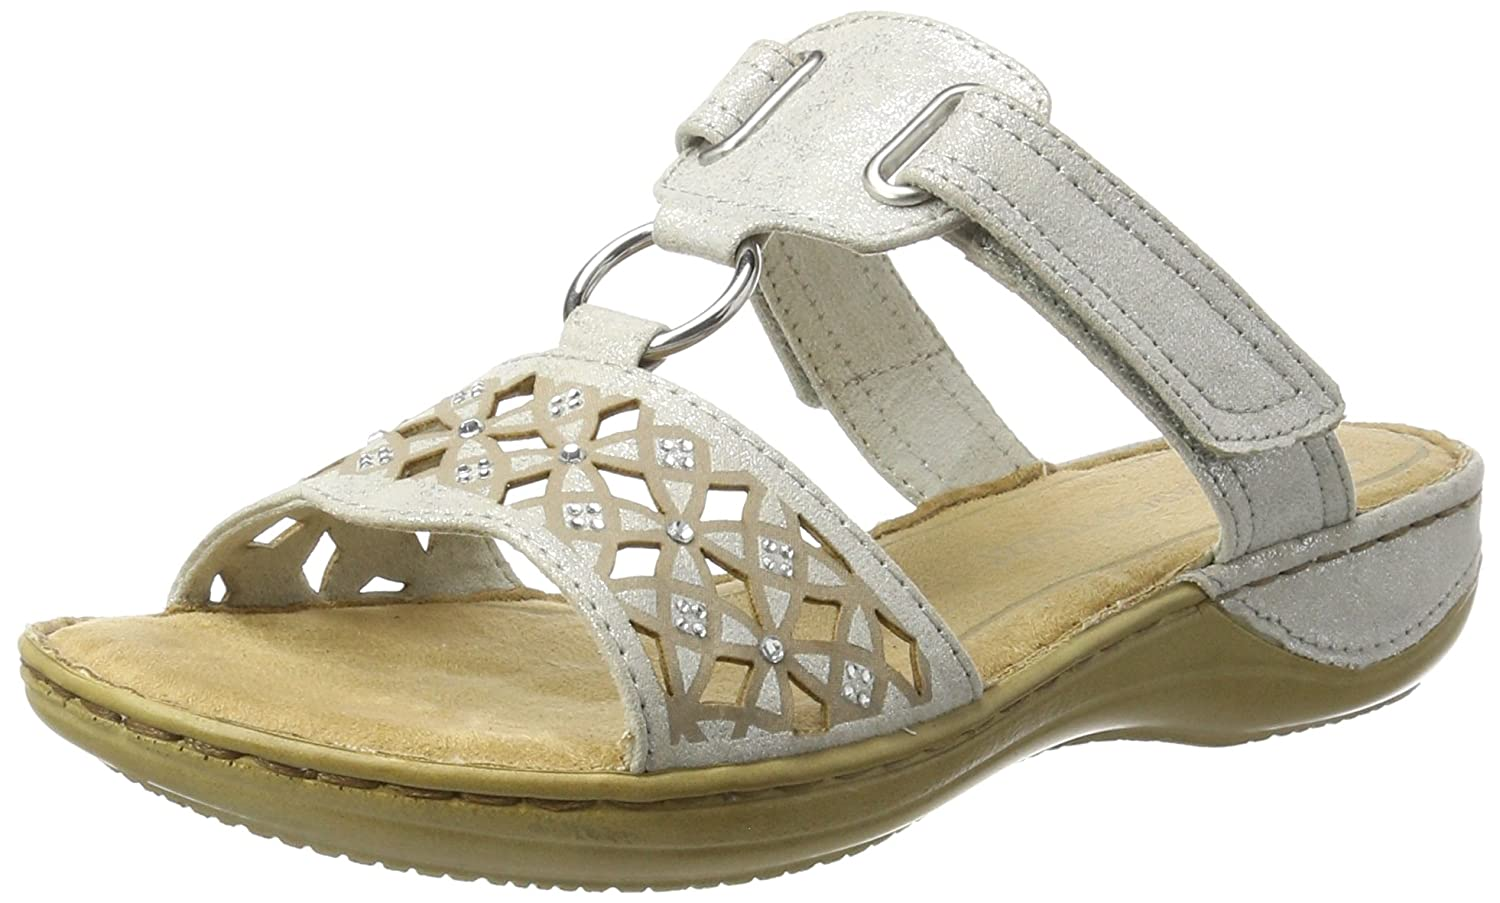 Marco Tozzi 27501, Sandales Ouvert Bout 4333 Ouvert Femme (White Blanc (White Metallic 151) a1177cb - fast-weightloss-diet.space